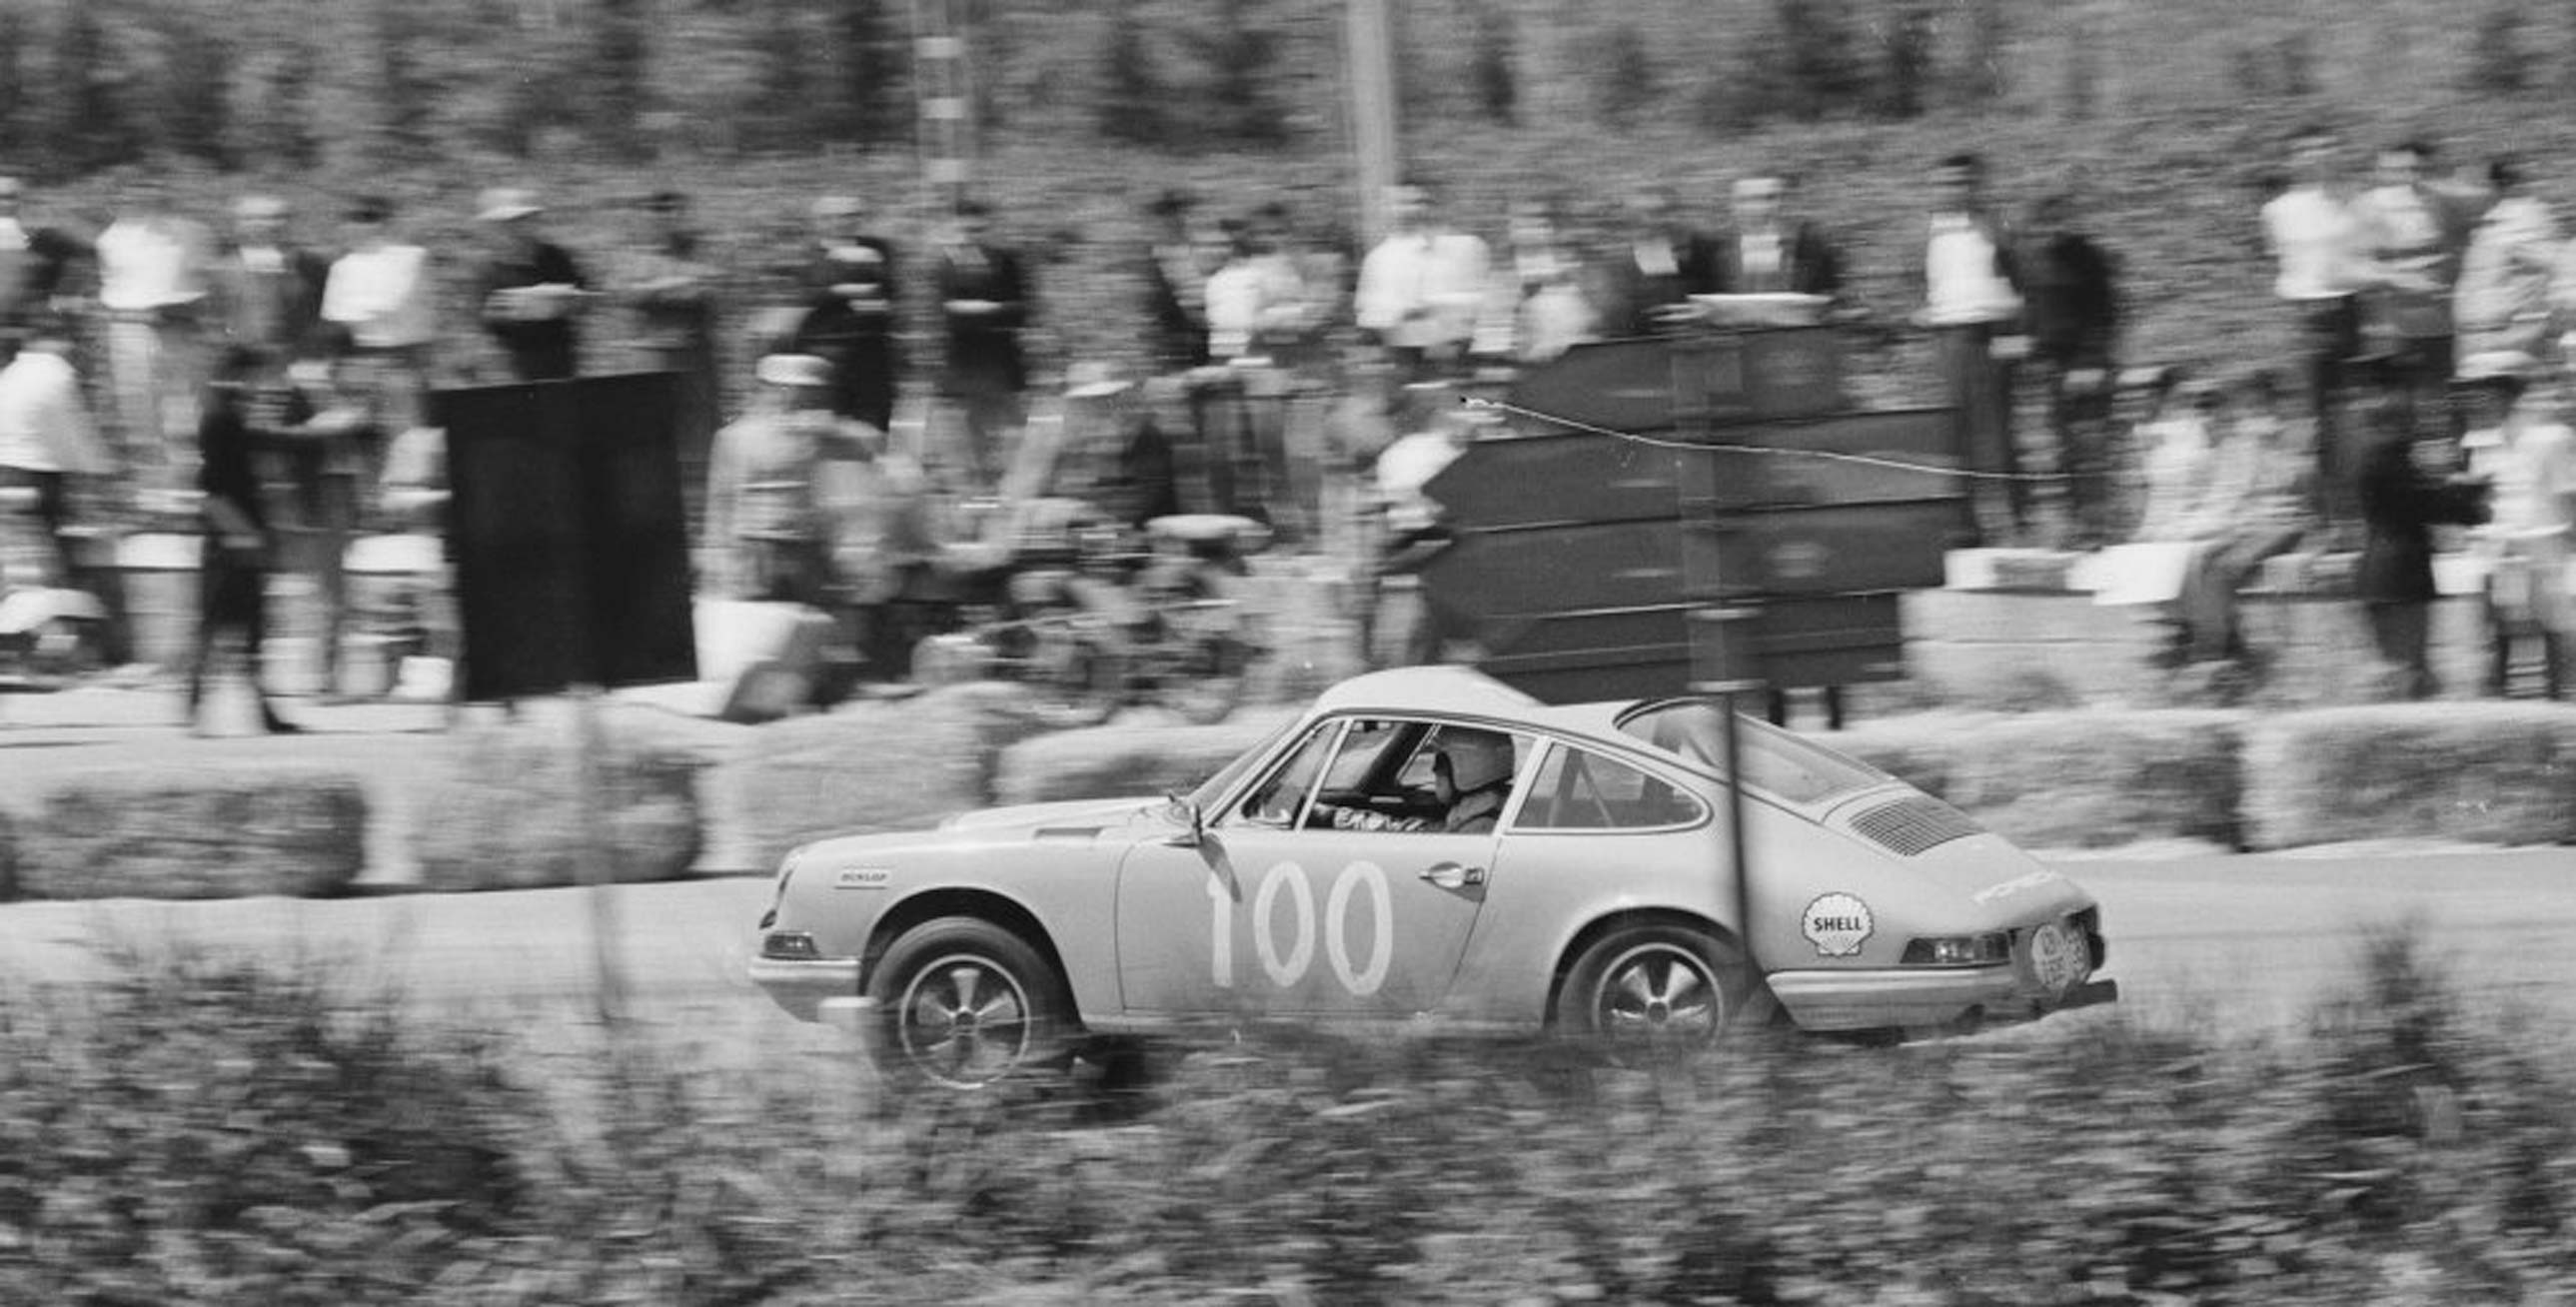 Rob Mackie driving a 911T at the Targa Florio in 1969.